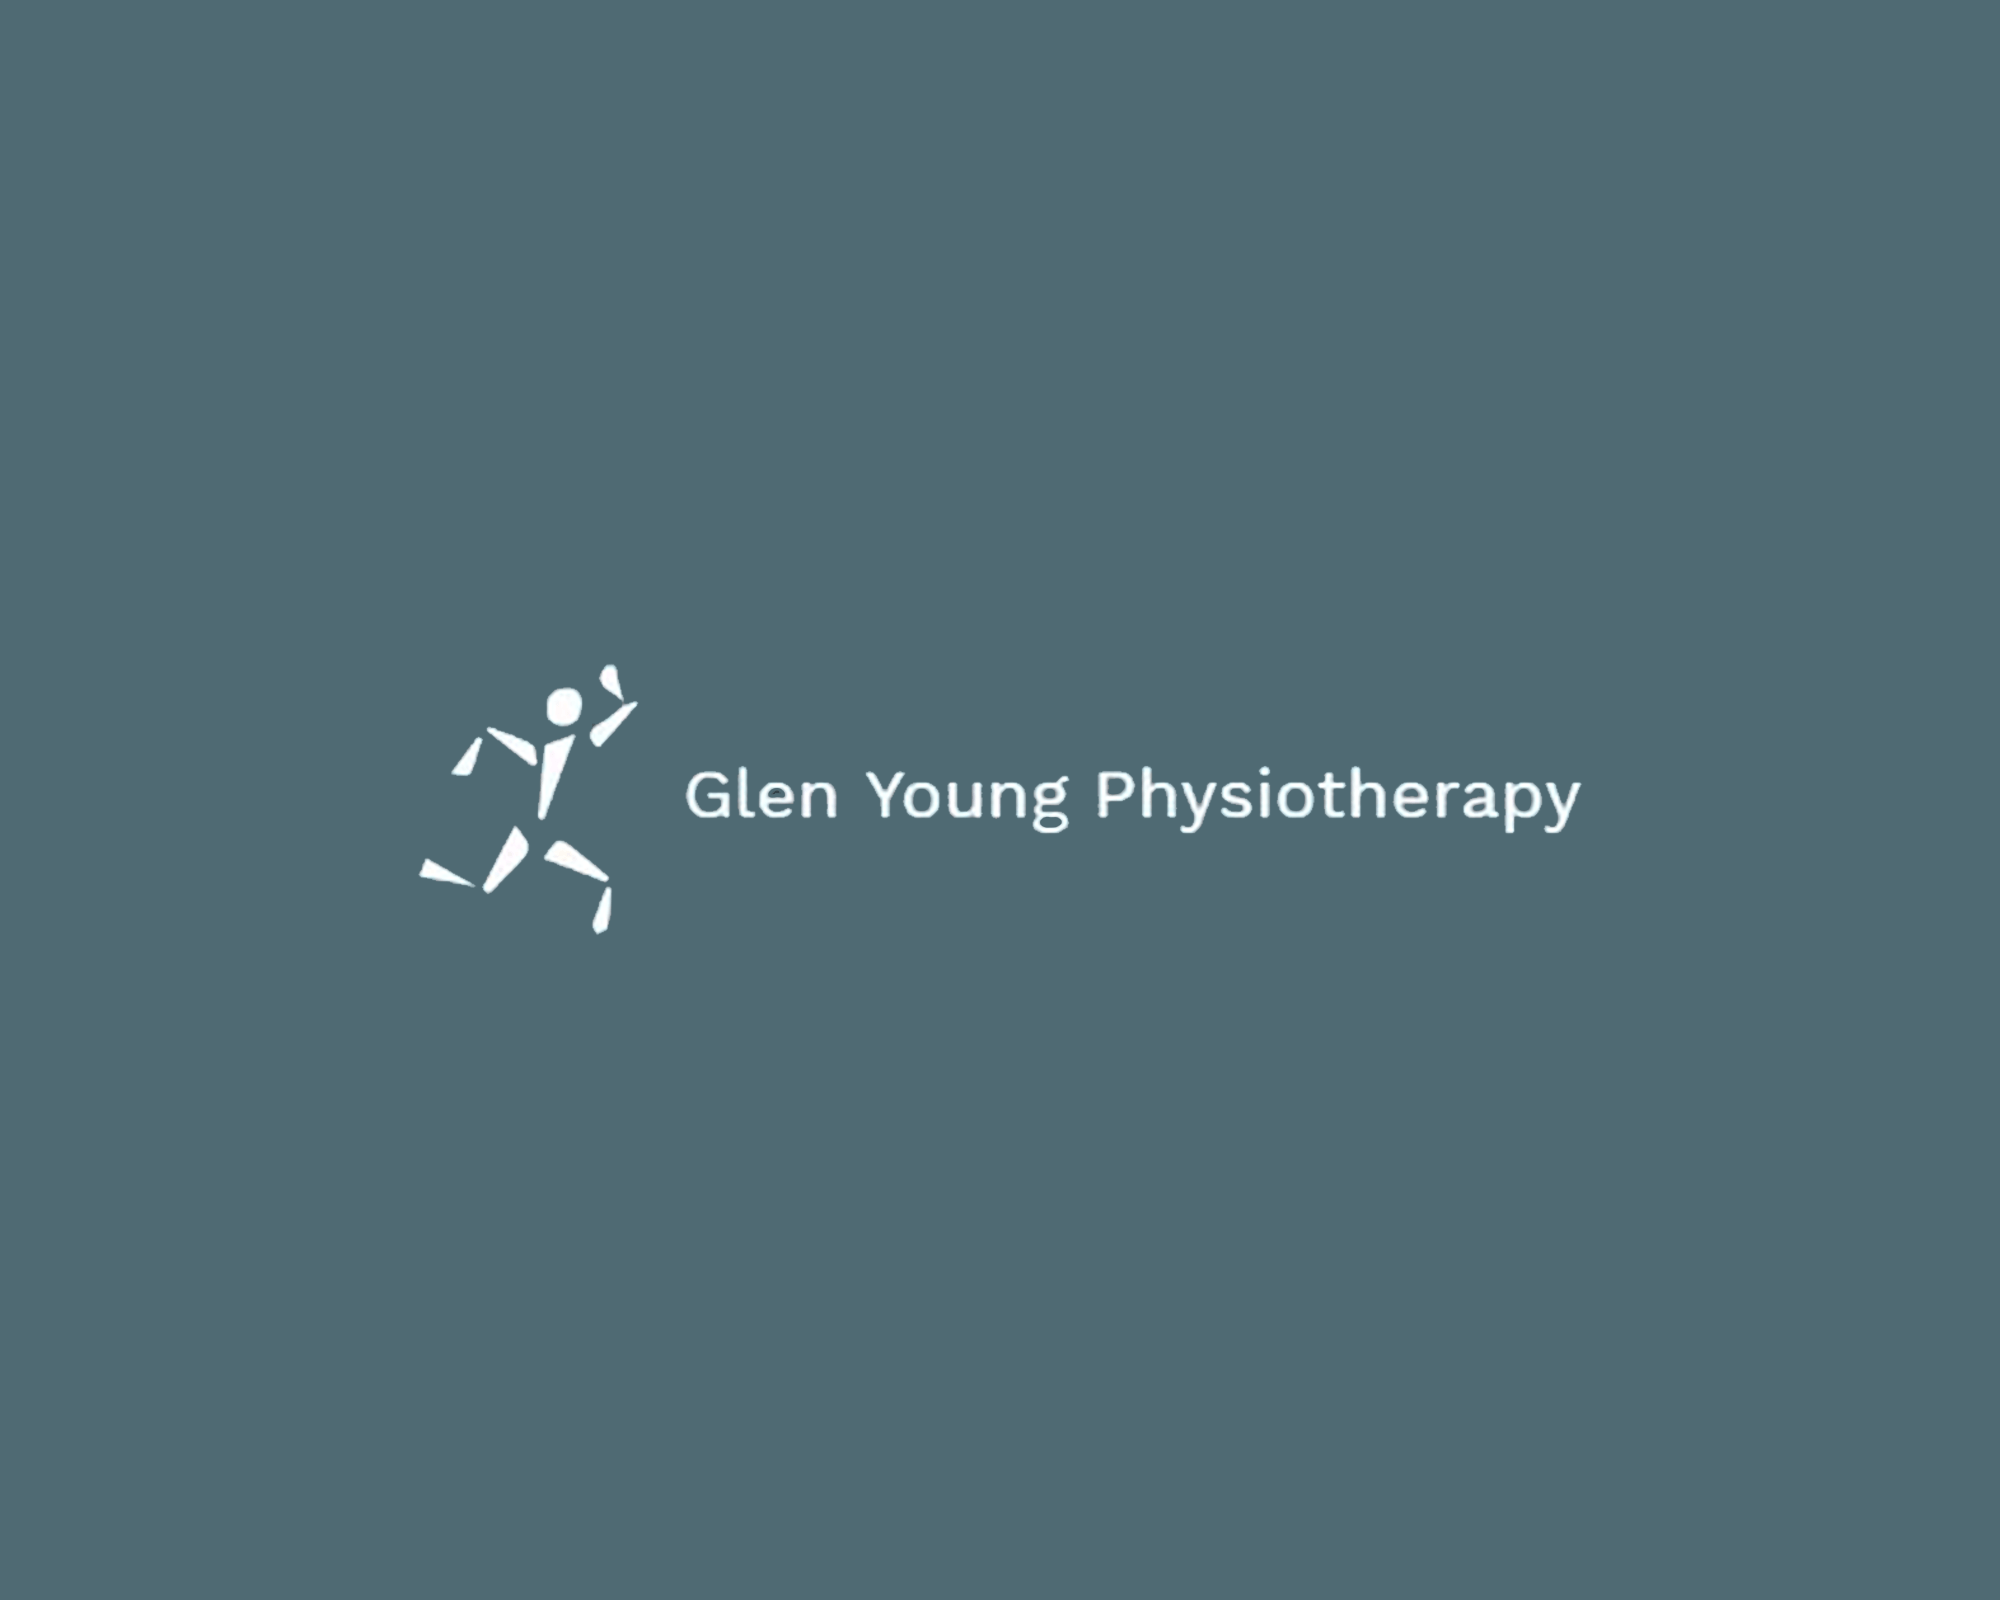 glen young physiotherapy Logo